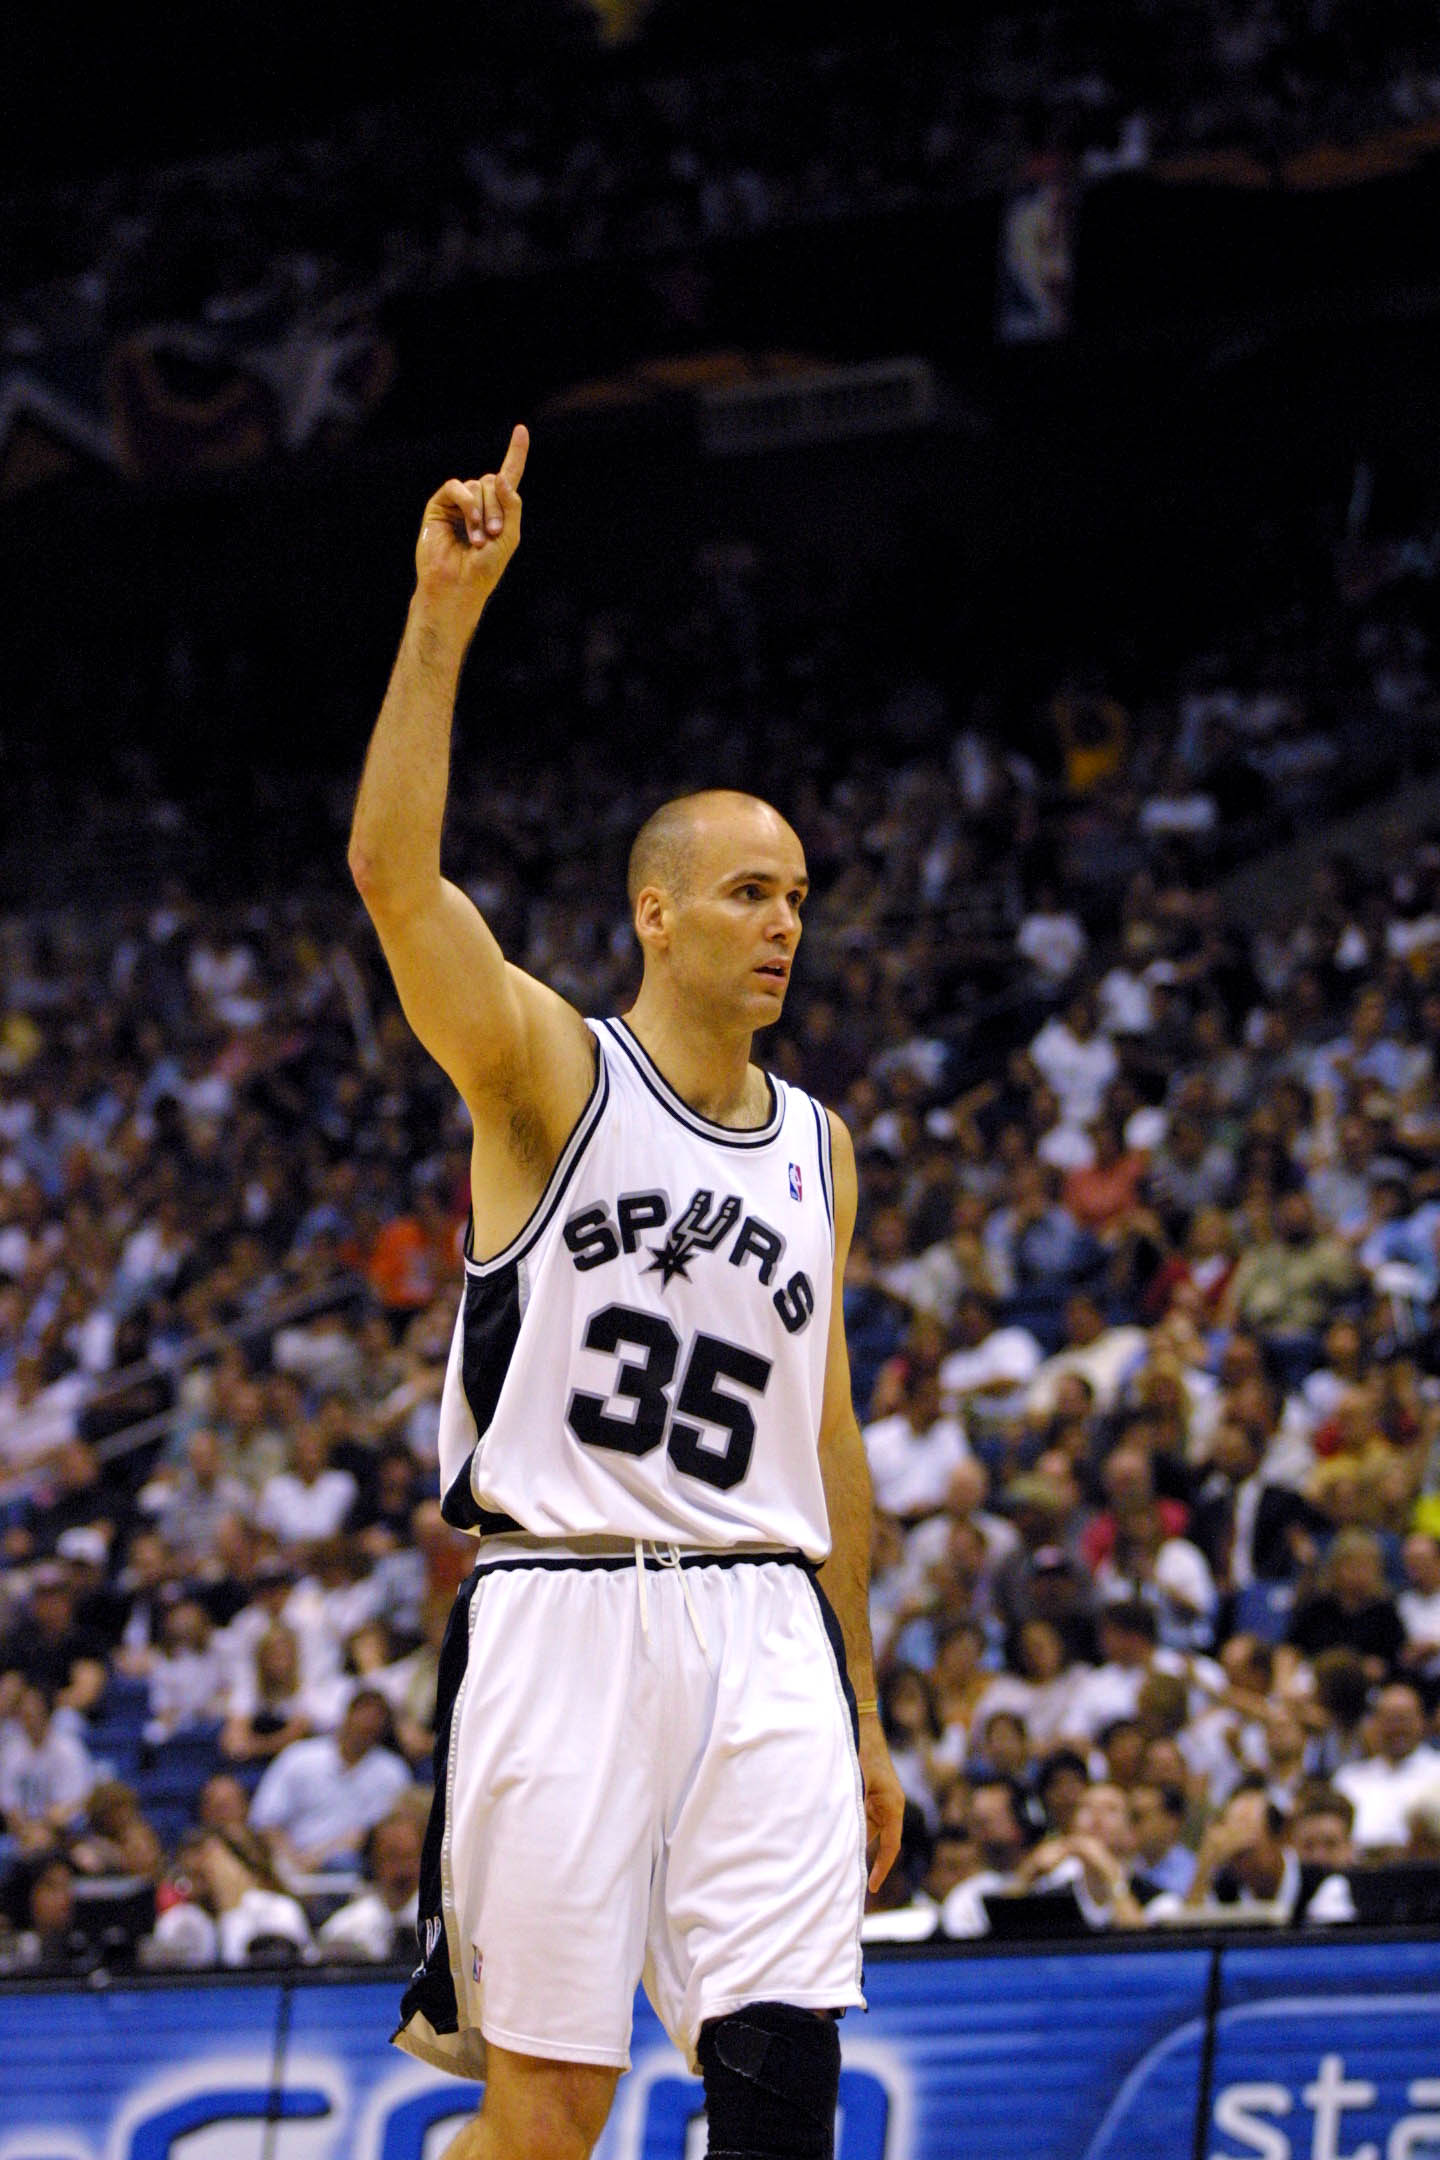 14 May 2001:  Danny Ferry #35 of the San Antonio Spurs celebrates in game five of the western conference semi-finals against the Dallas Mavericks at the Alamodome in San Antonio, Texas.  The Spurs won 105-87 to take the series 4-1.  DIGITAL IMAGE.  Mandat